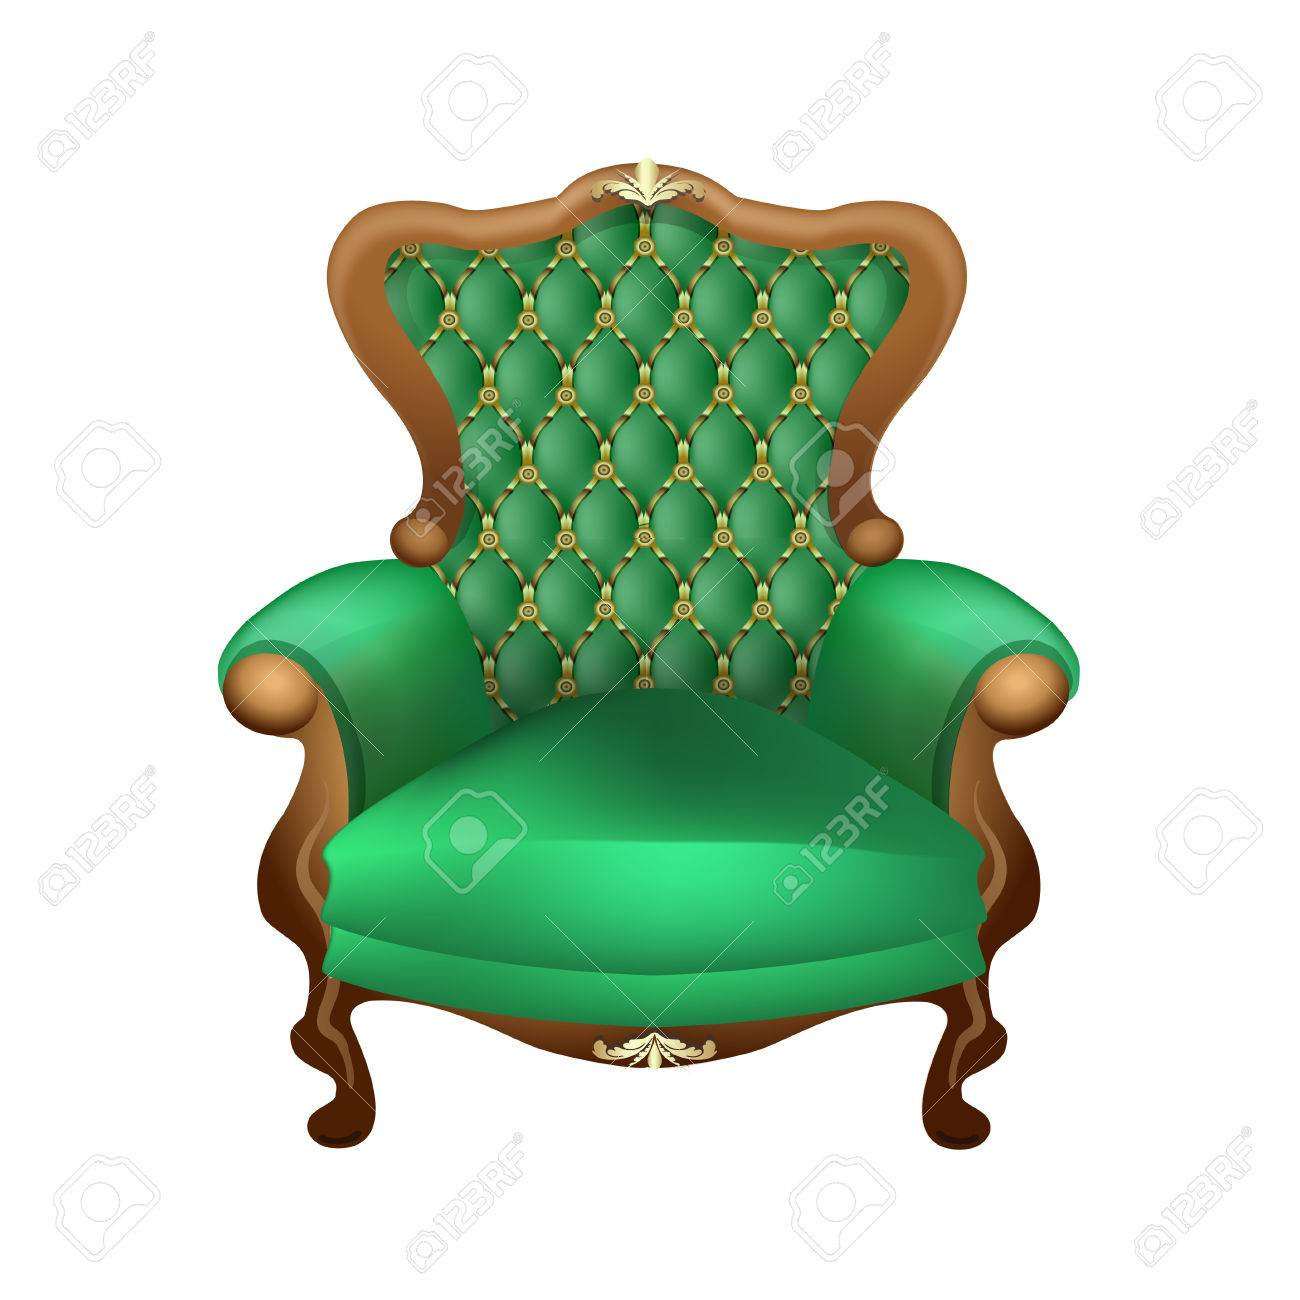 Green Upholstered Chair Beautiful Chair With A Beautiful Upholstered In Green On A White